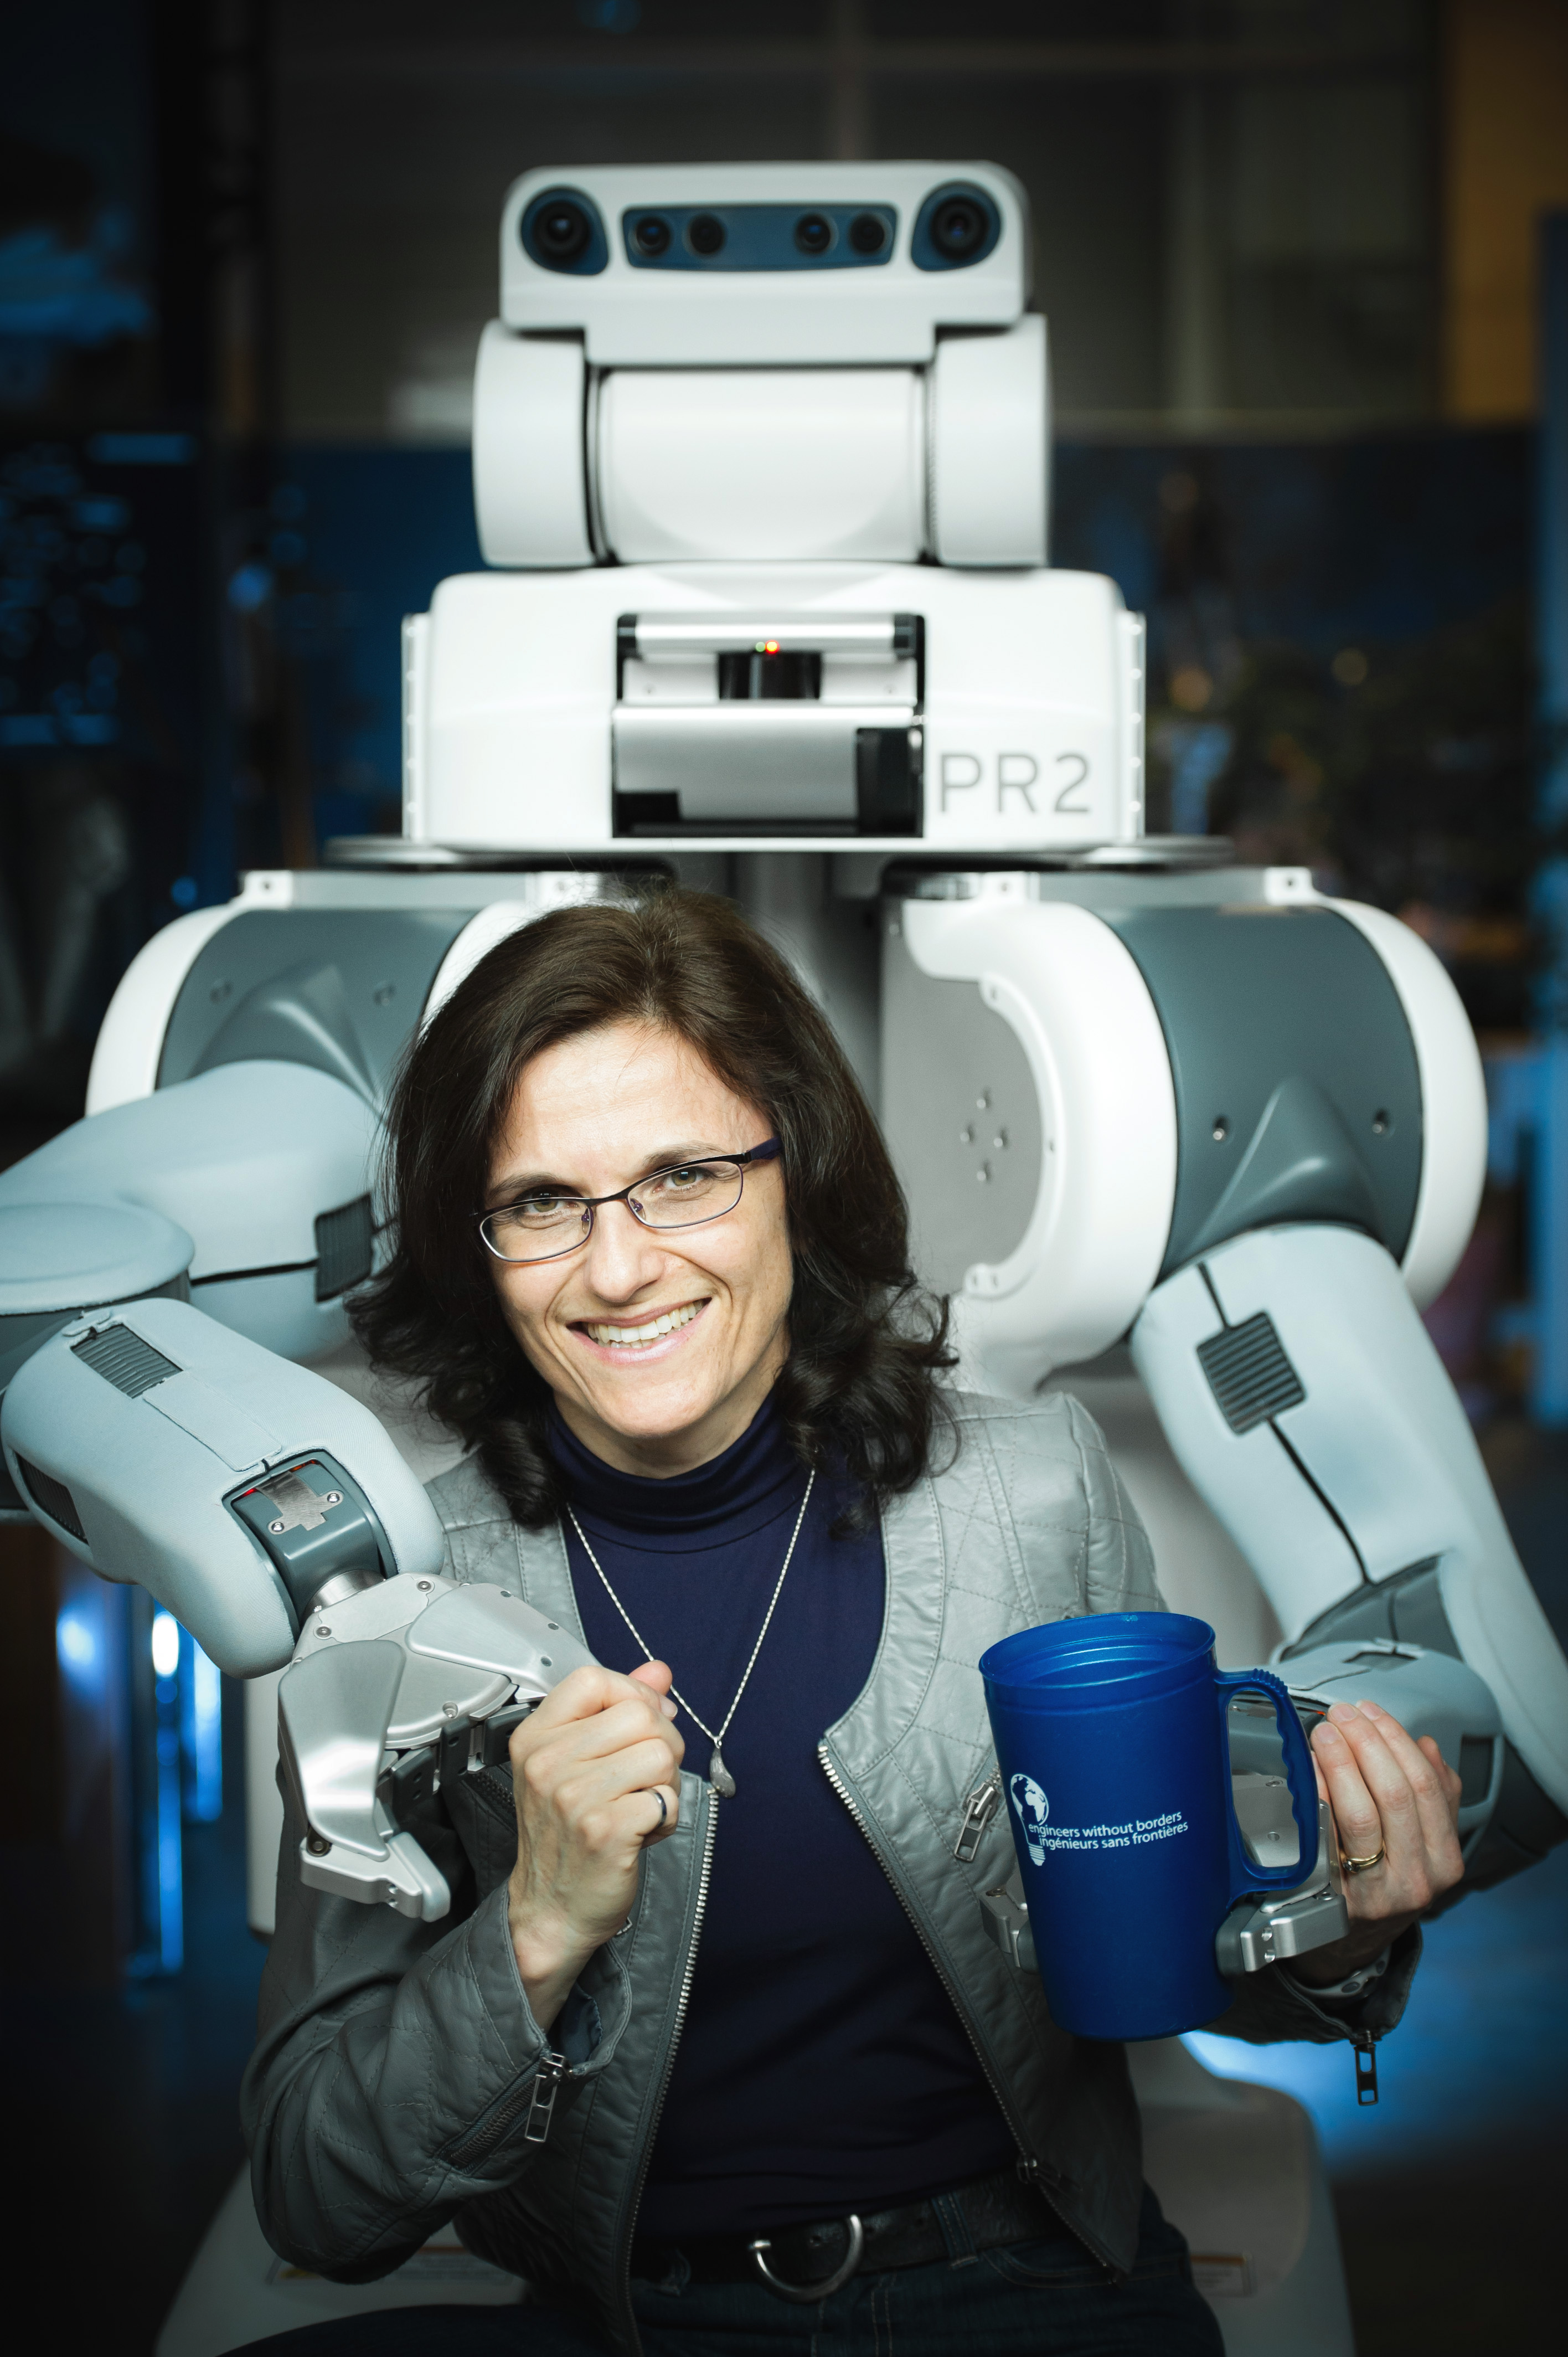 The Cobot Experience: Elizabeth Croft & The Rules of the Handover